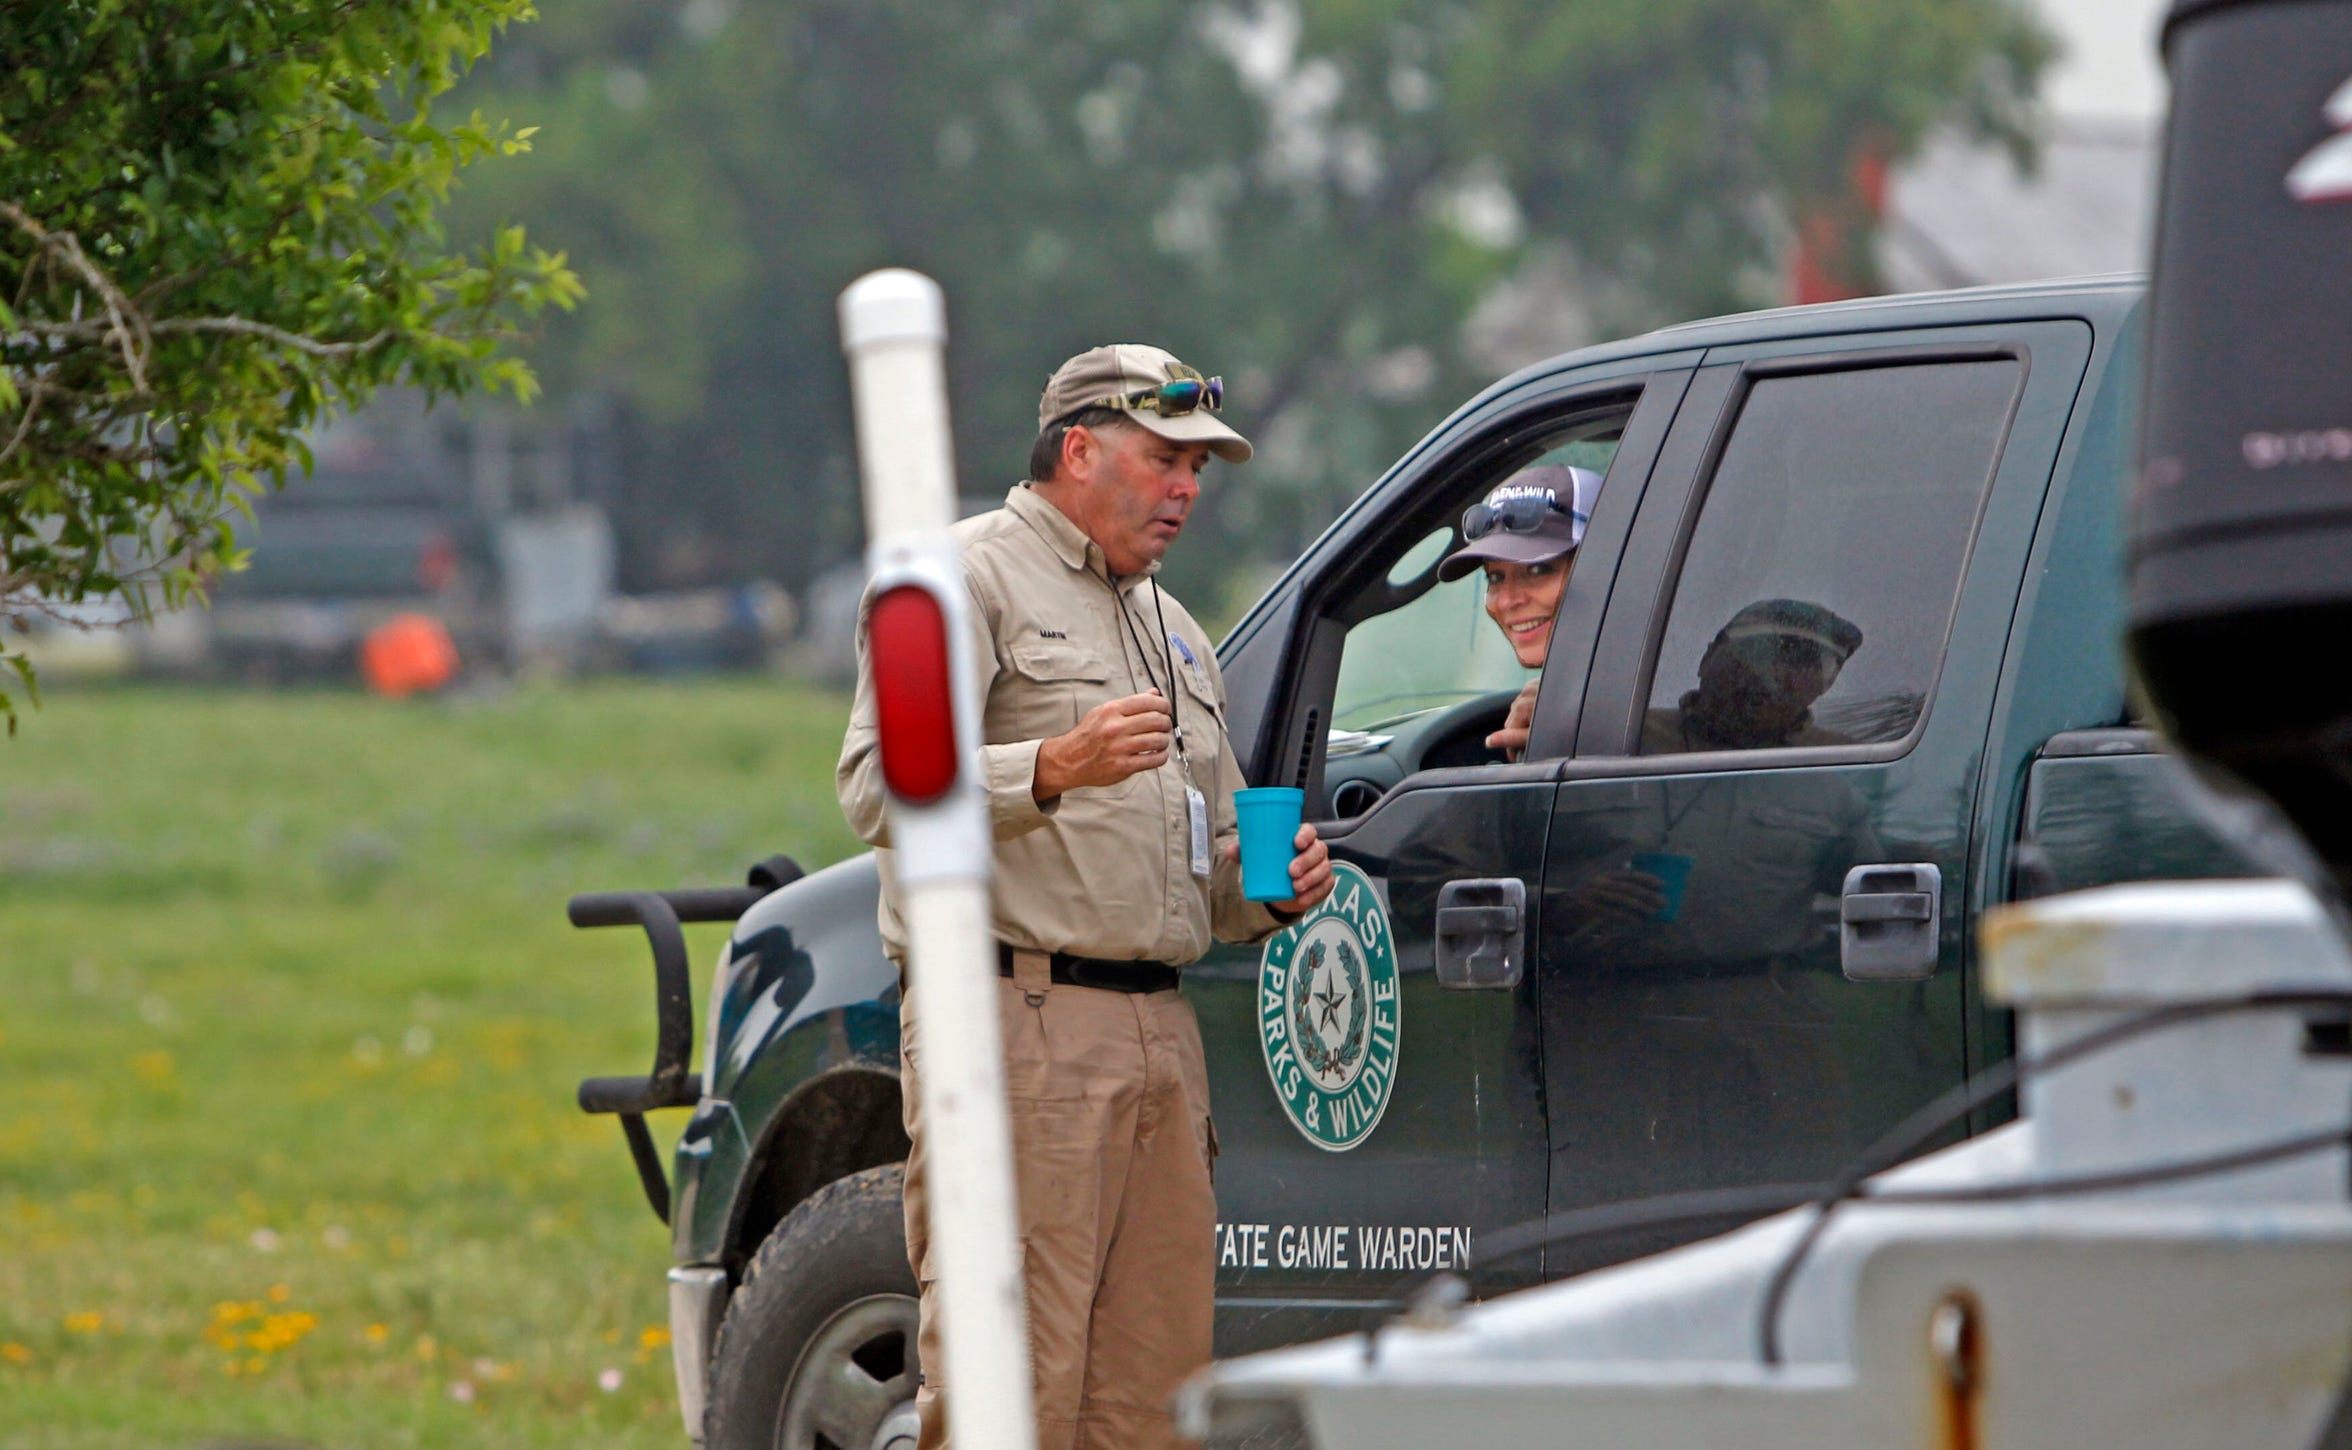 Texas game Warden Marty Martin calmly instructs Kari Kelley on how to back up a boat and trailer down a ramp during a Rockport Women in the Wild event.